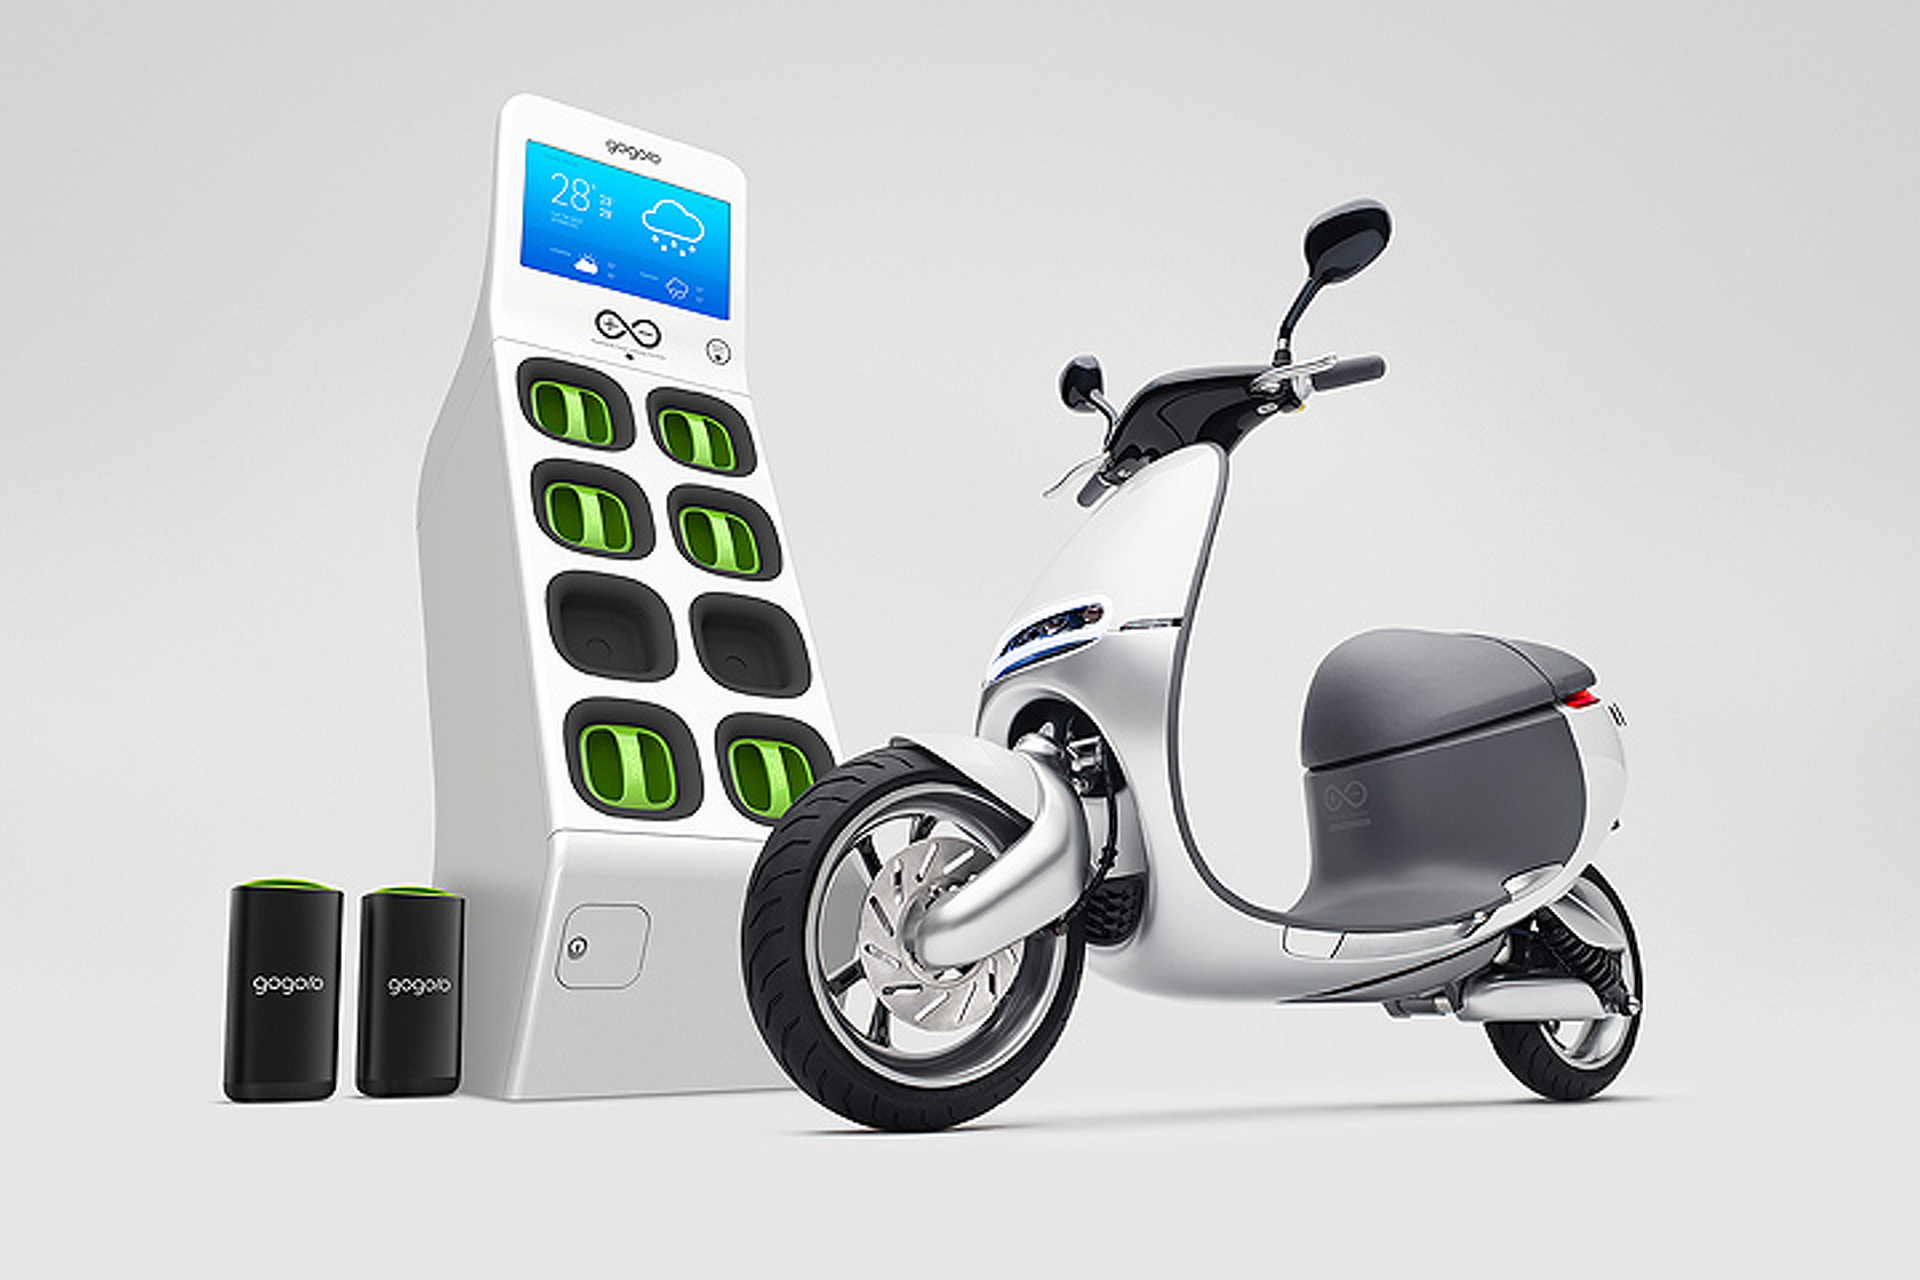 The Gogoro e-Scooter Solves Mobility Problems with Smartphone Tech